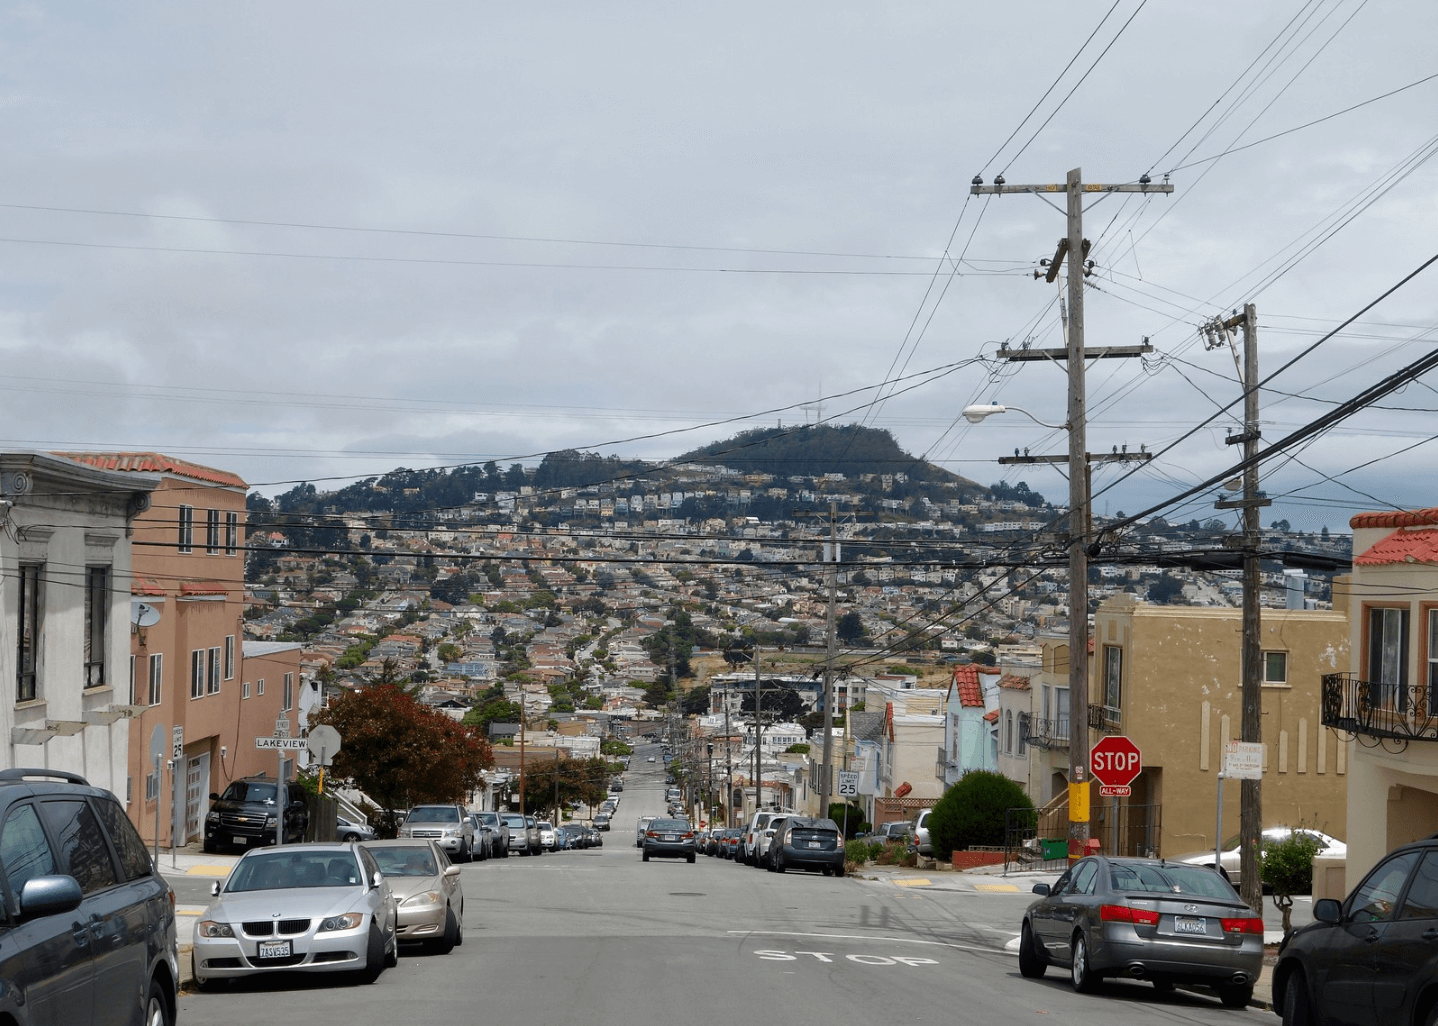 The view from Ingleside to Oceanview with Twin Peaks in the distance